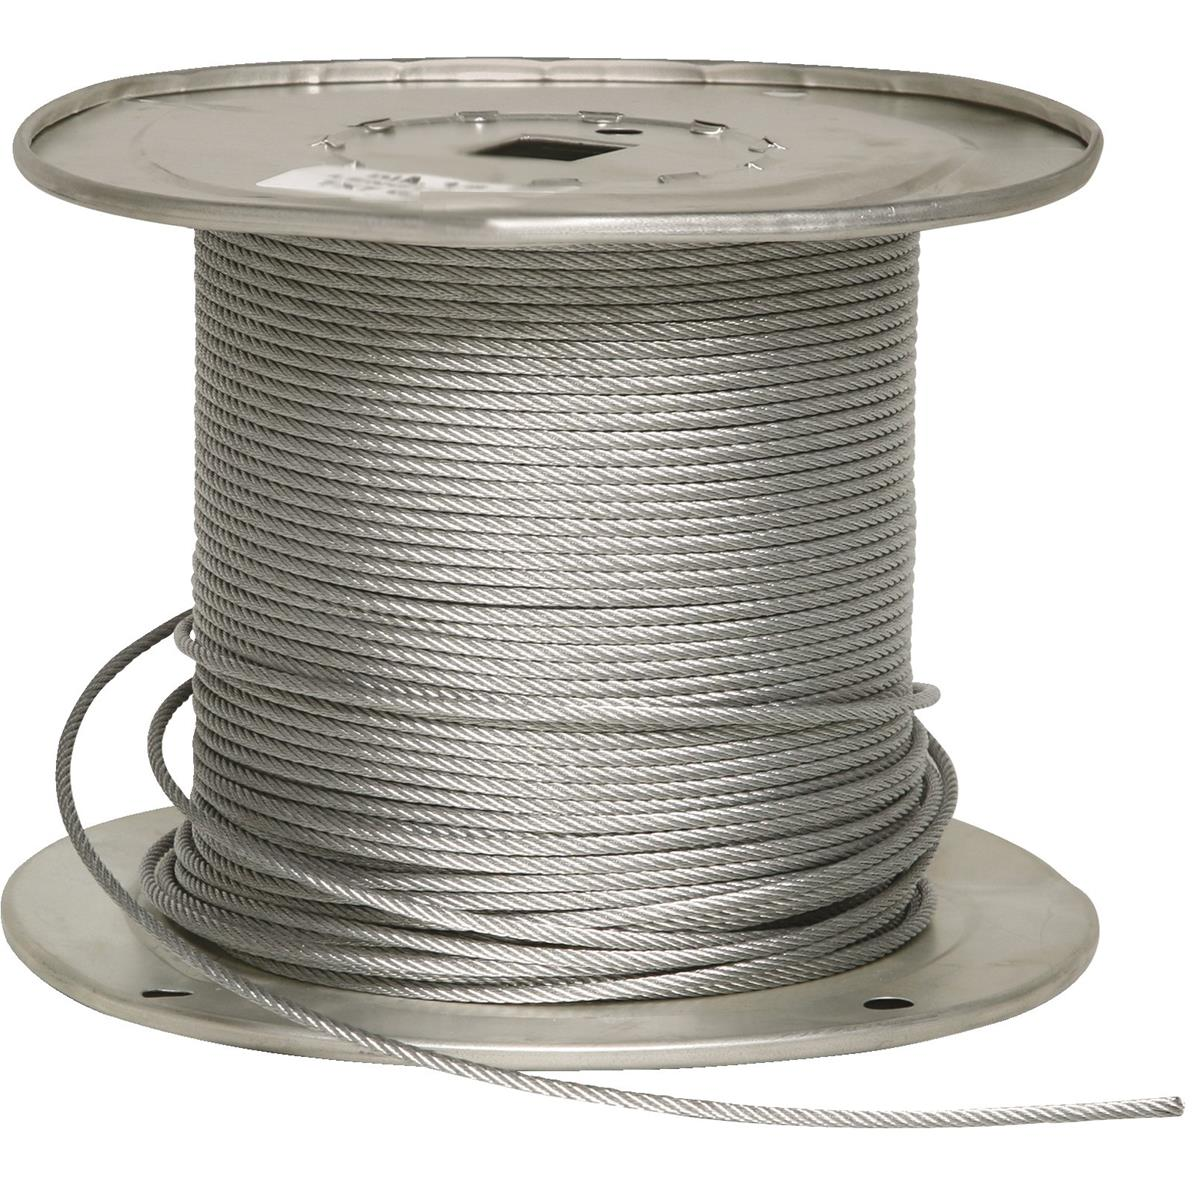 Lift-All Stainless Steel Cable